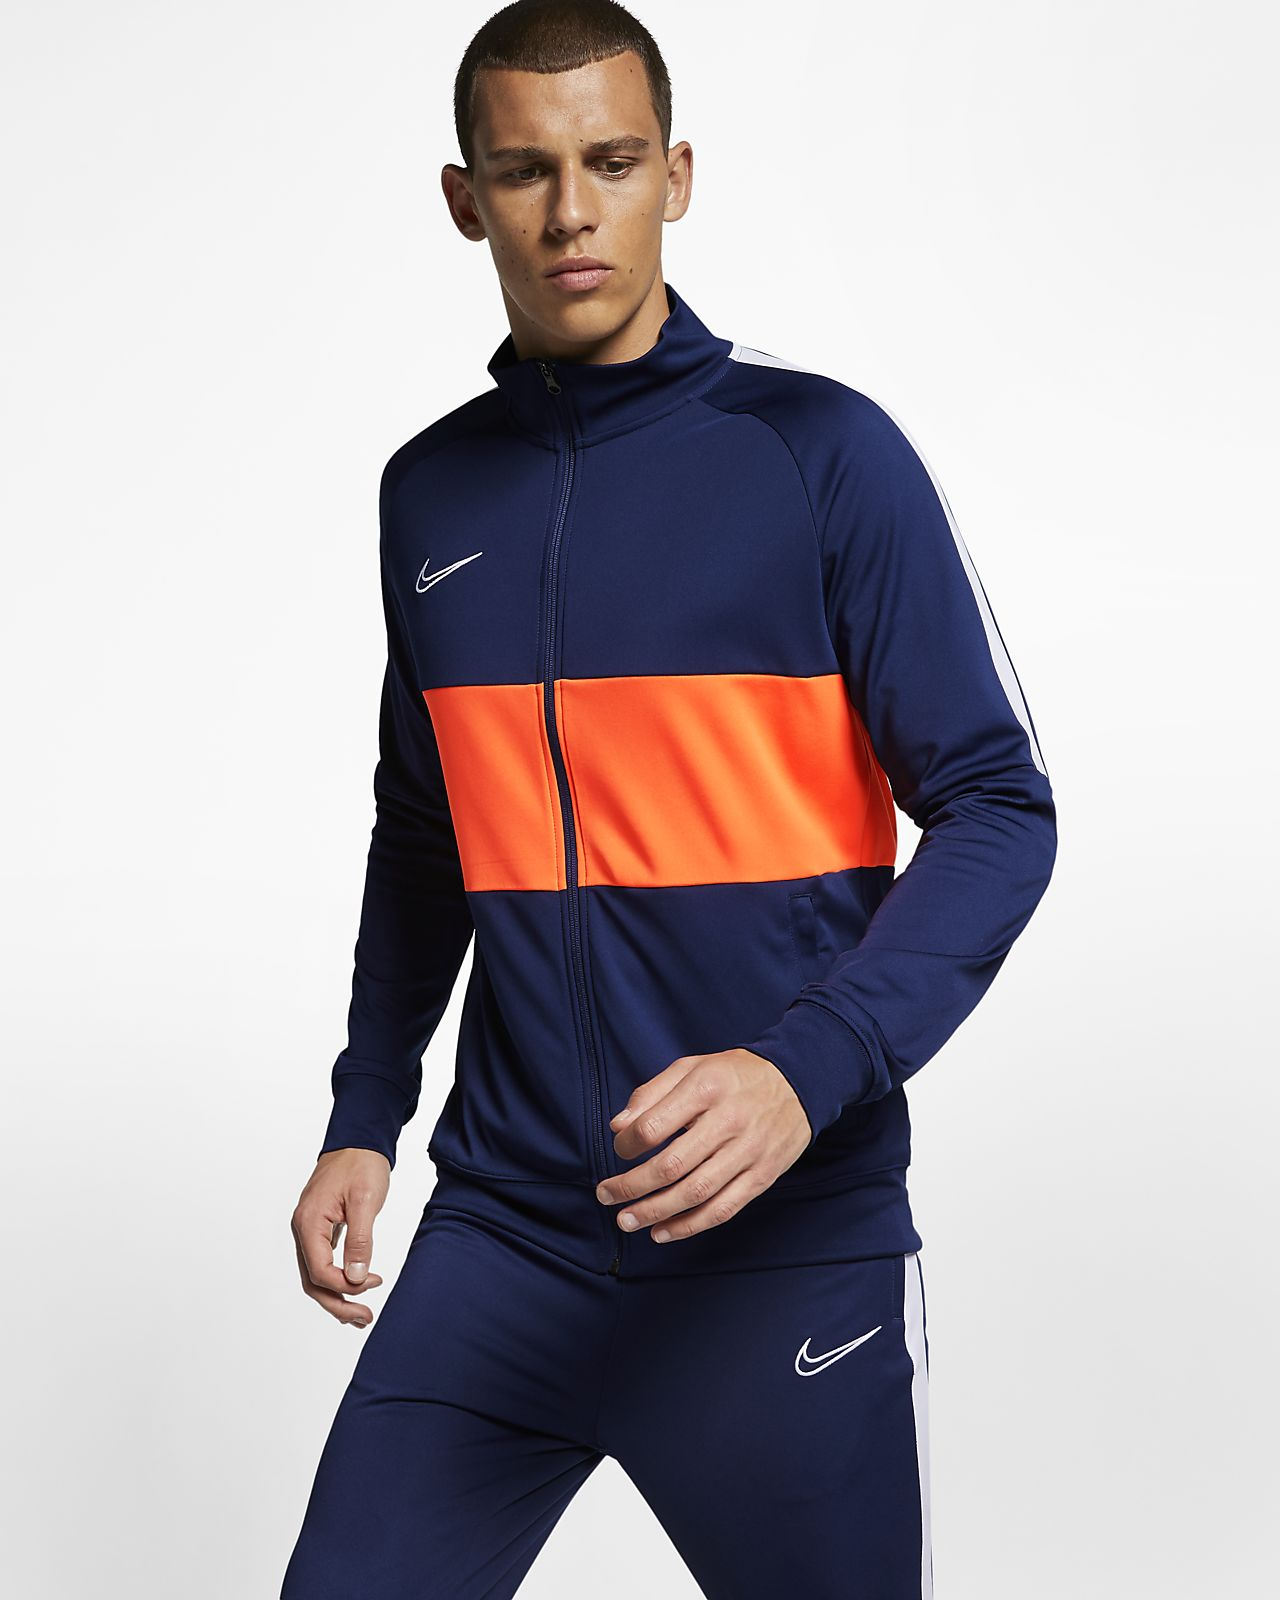 Nike Dri-FIT Academy Men's Football Jacket